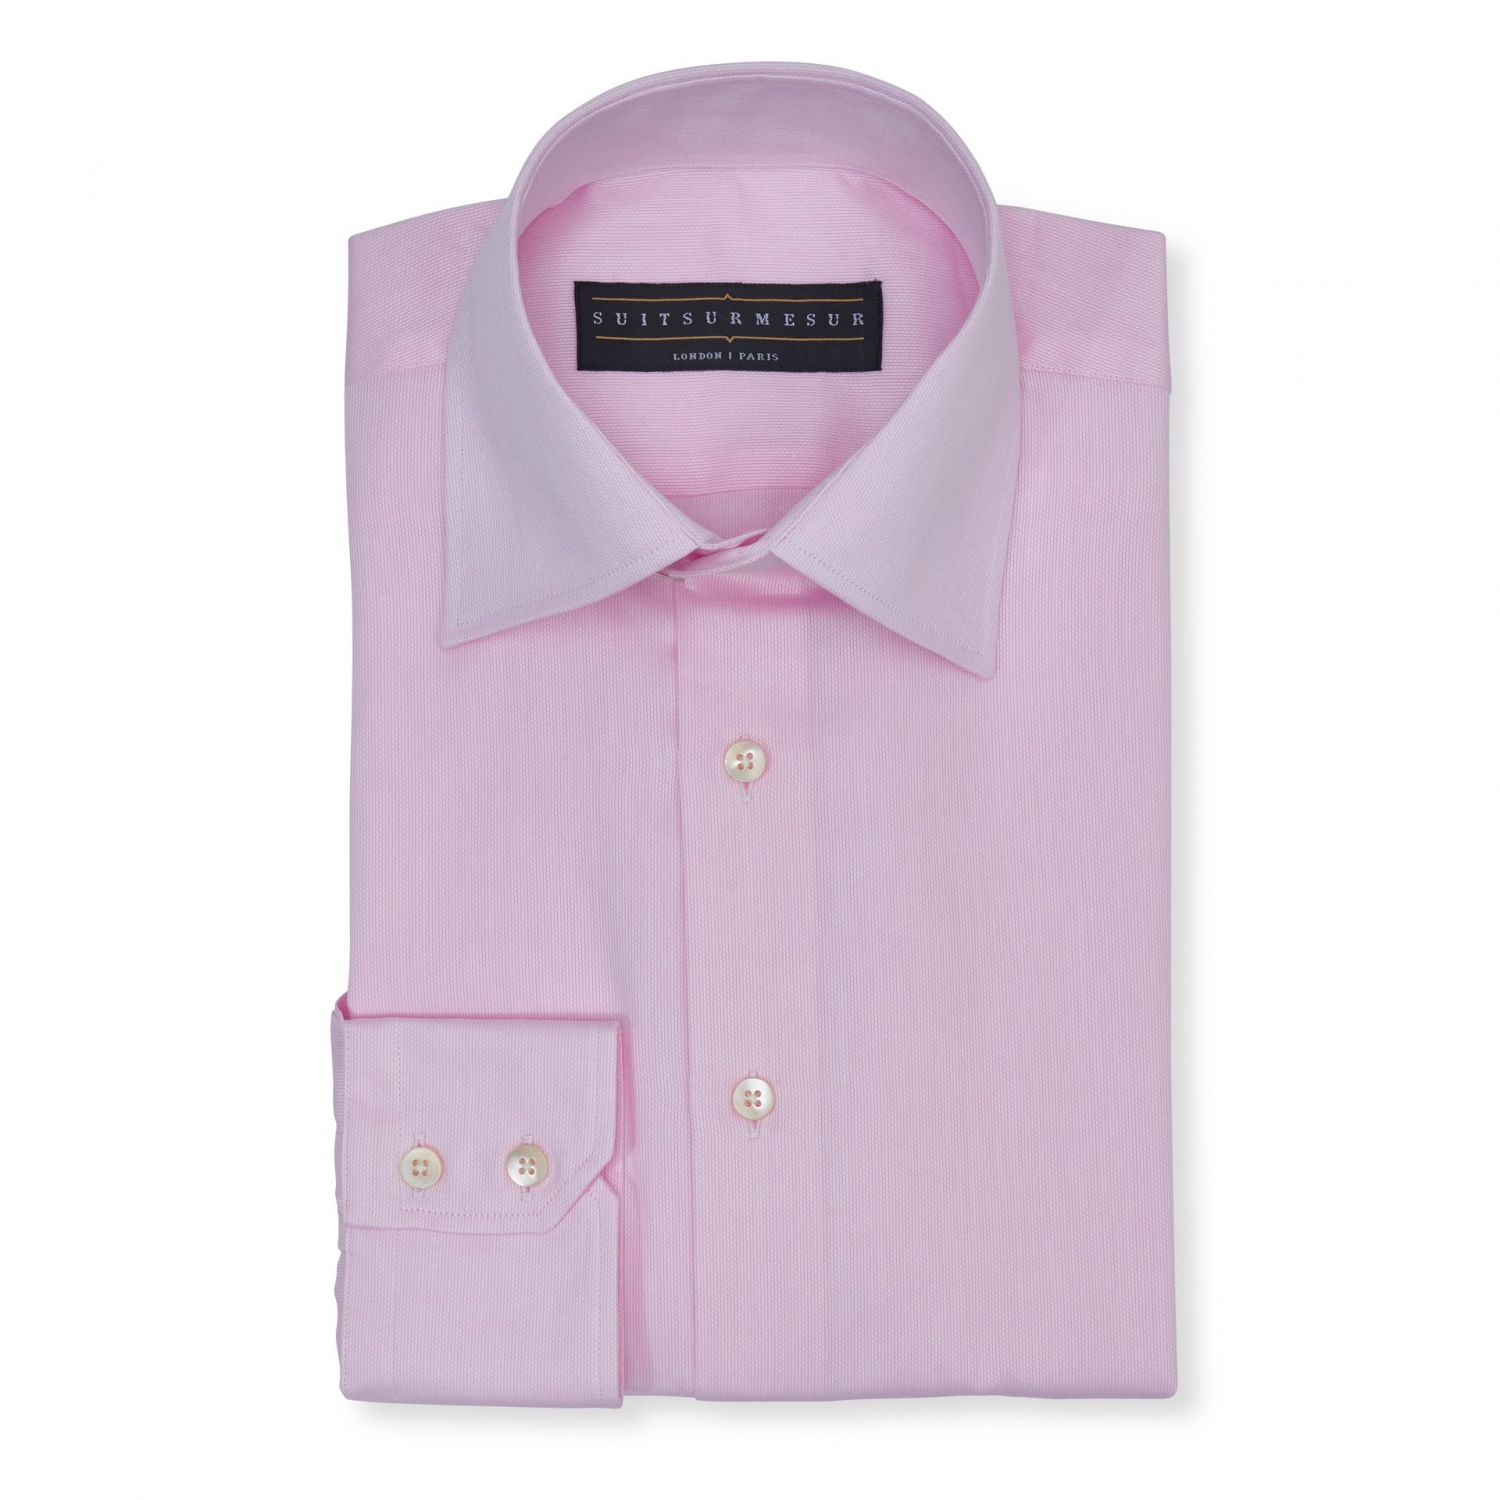 Solid Birdseye light pink (half Italian collar) classic shirt - 100% cotton Soktas fabric